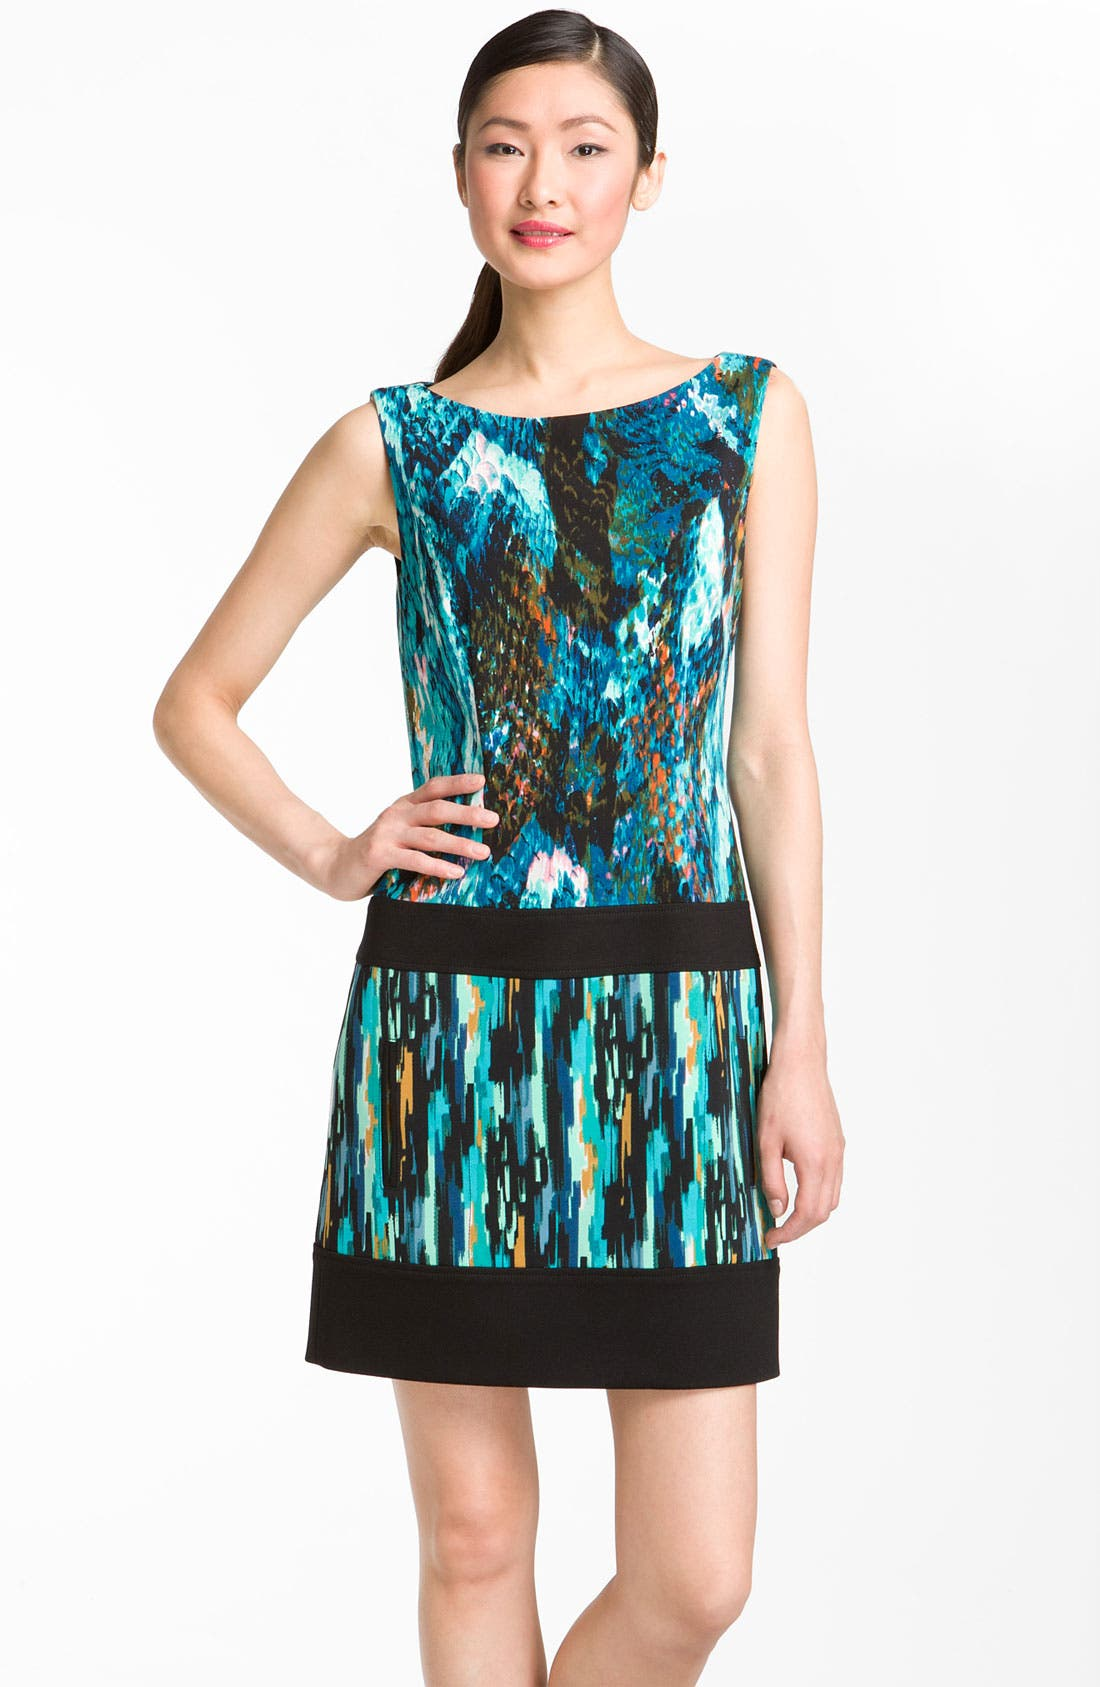 Main Image - Laundry by Shelli Segal Mixed Print Boatneck Dress